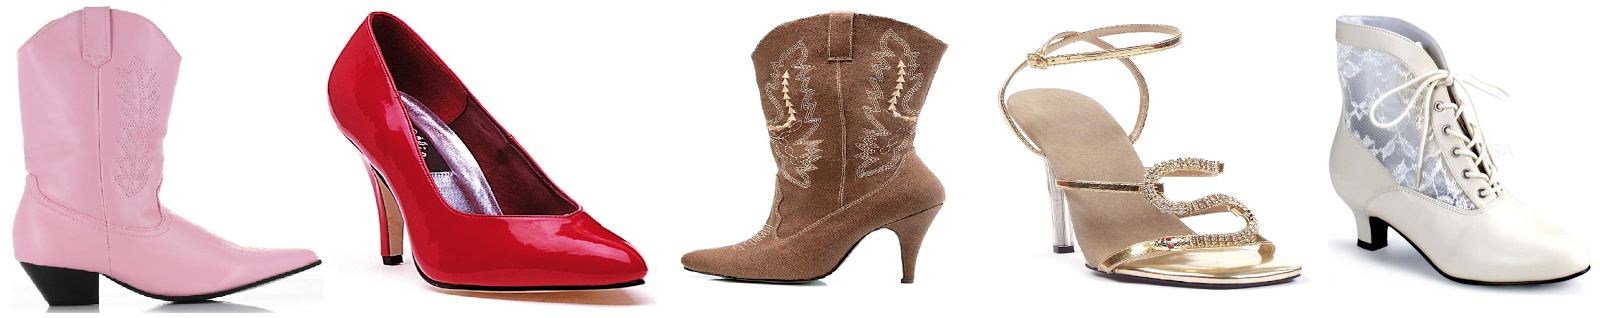 http://www.spicylegs.com/c-57-women-sexy-shoes-boots.aspx?pagenum=1